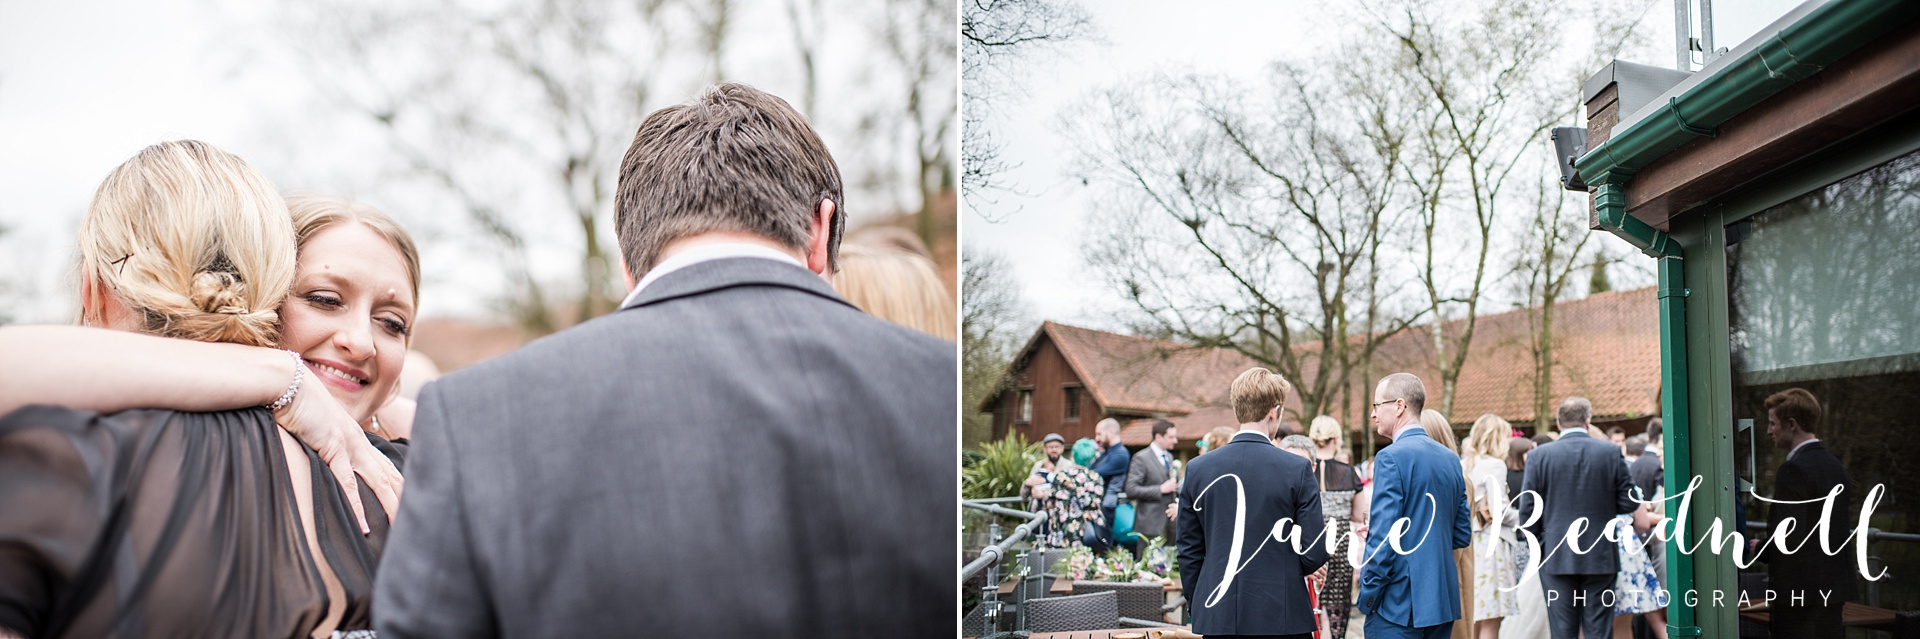 Otley Chevin Lodge wedding photography by Jane Beadnell Photography Leeds_0068